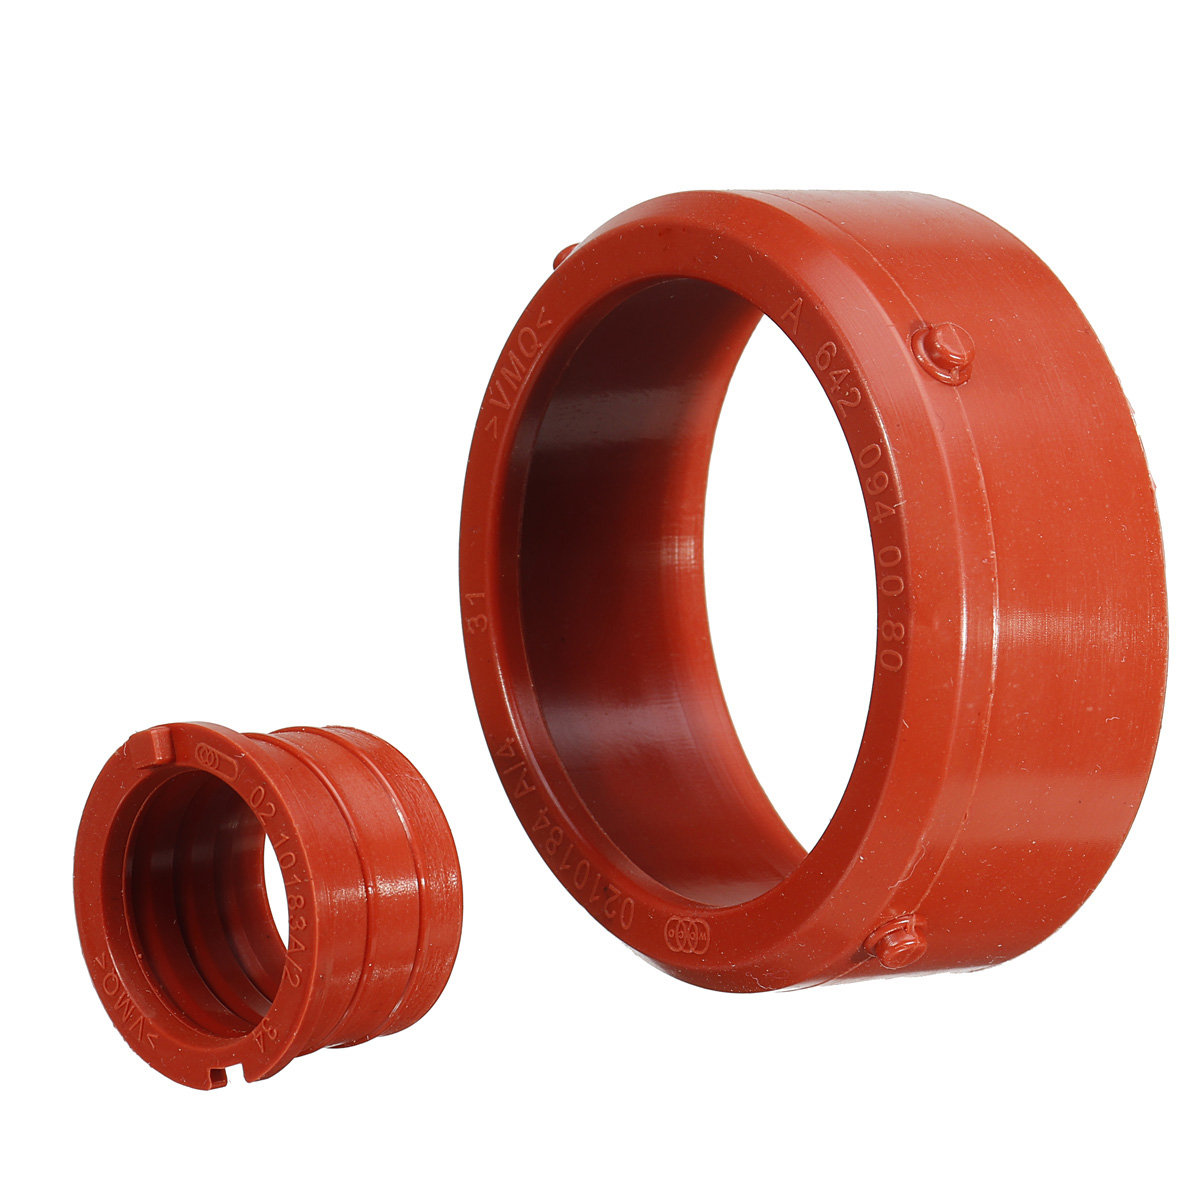 Turbo Seal-A6420940080 Turbo Intake Seal /& Engine Breather Seal Kit Compatible with Mercedes-Benz OM642 Engines